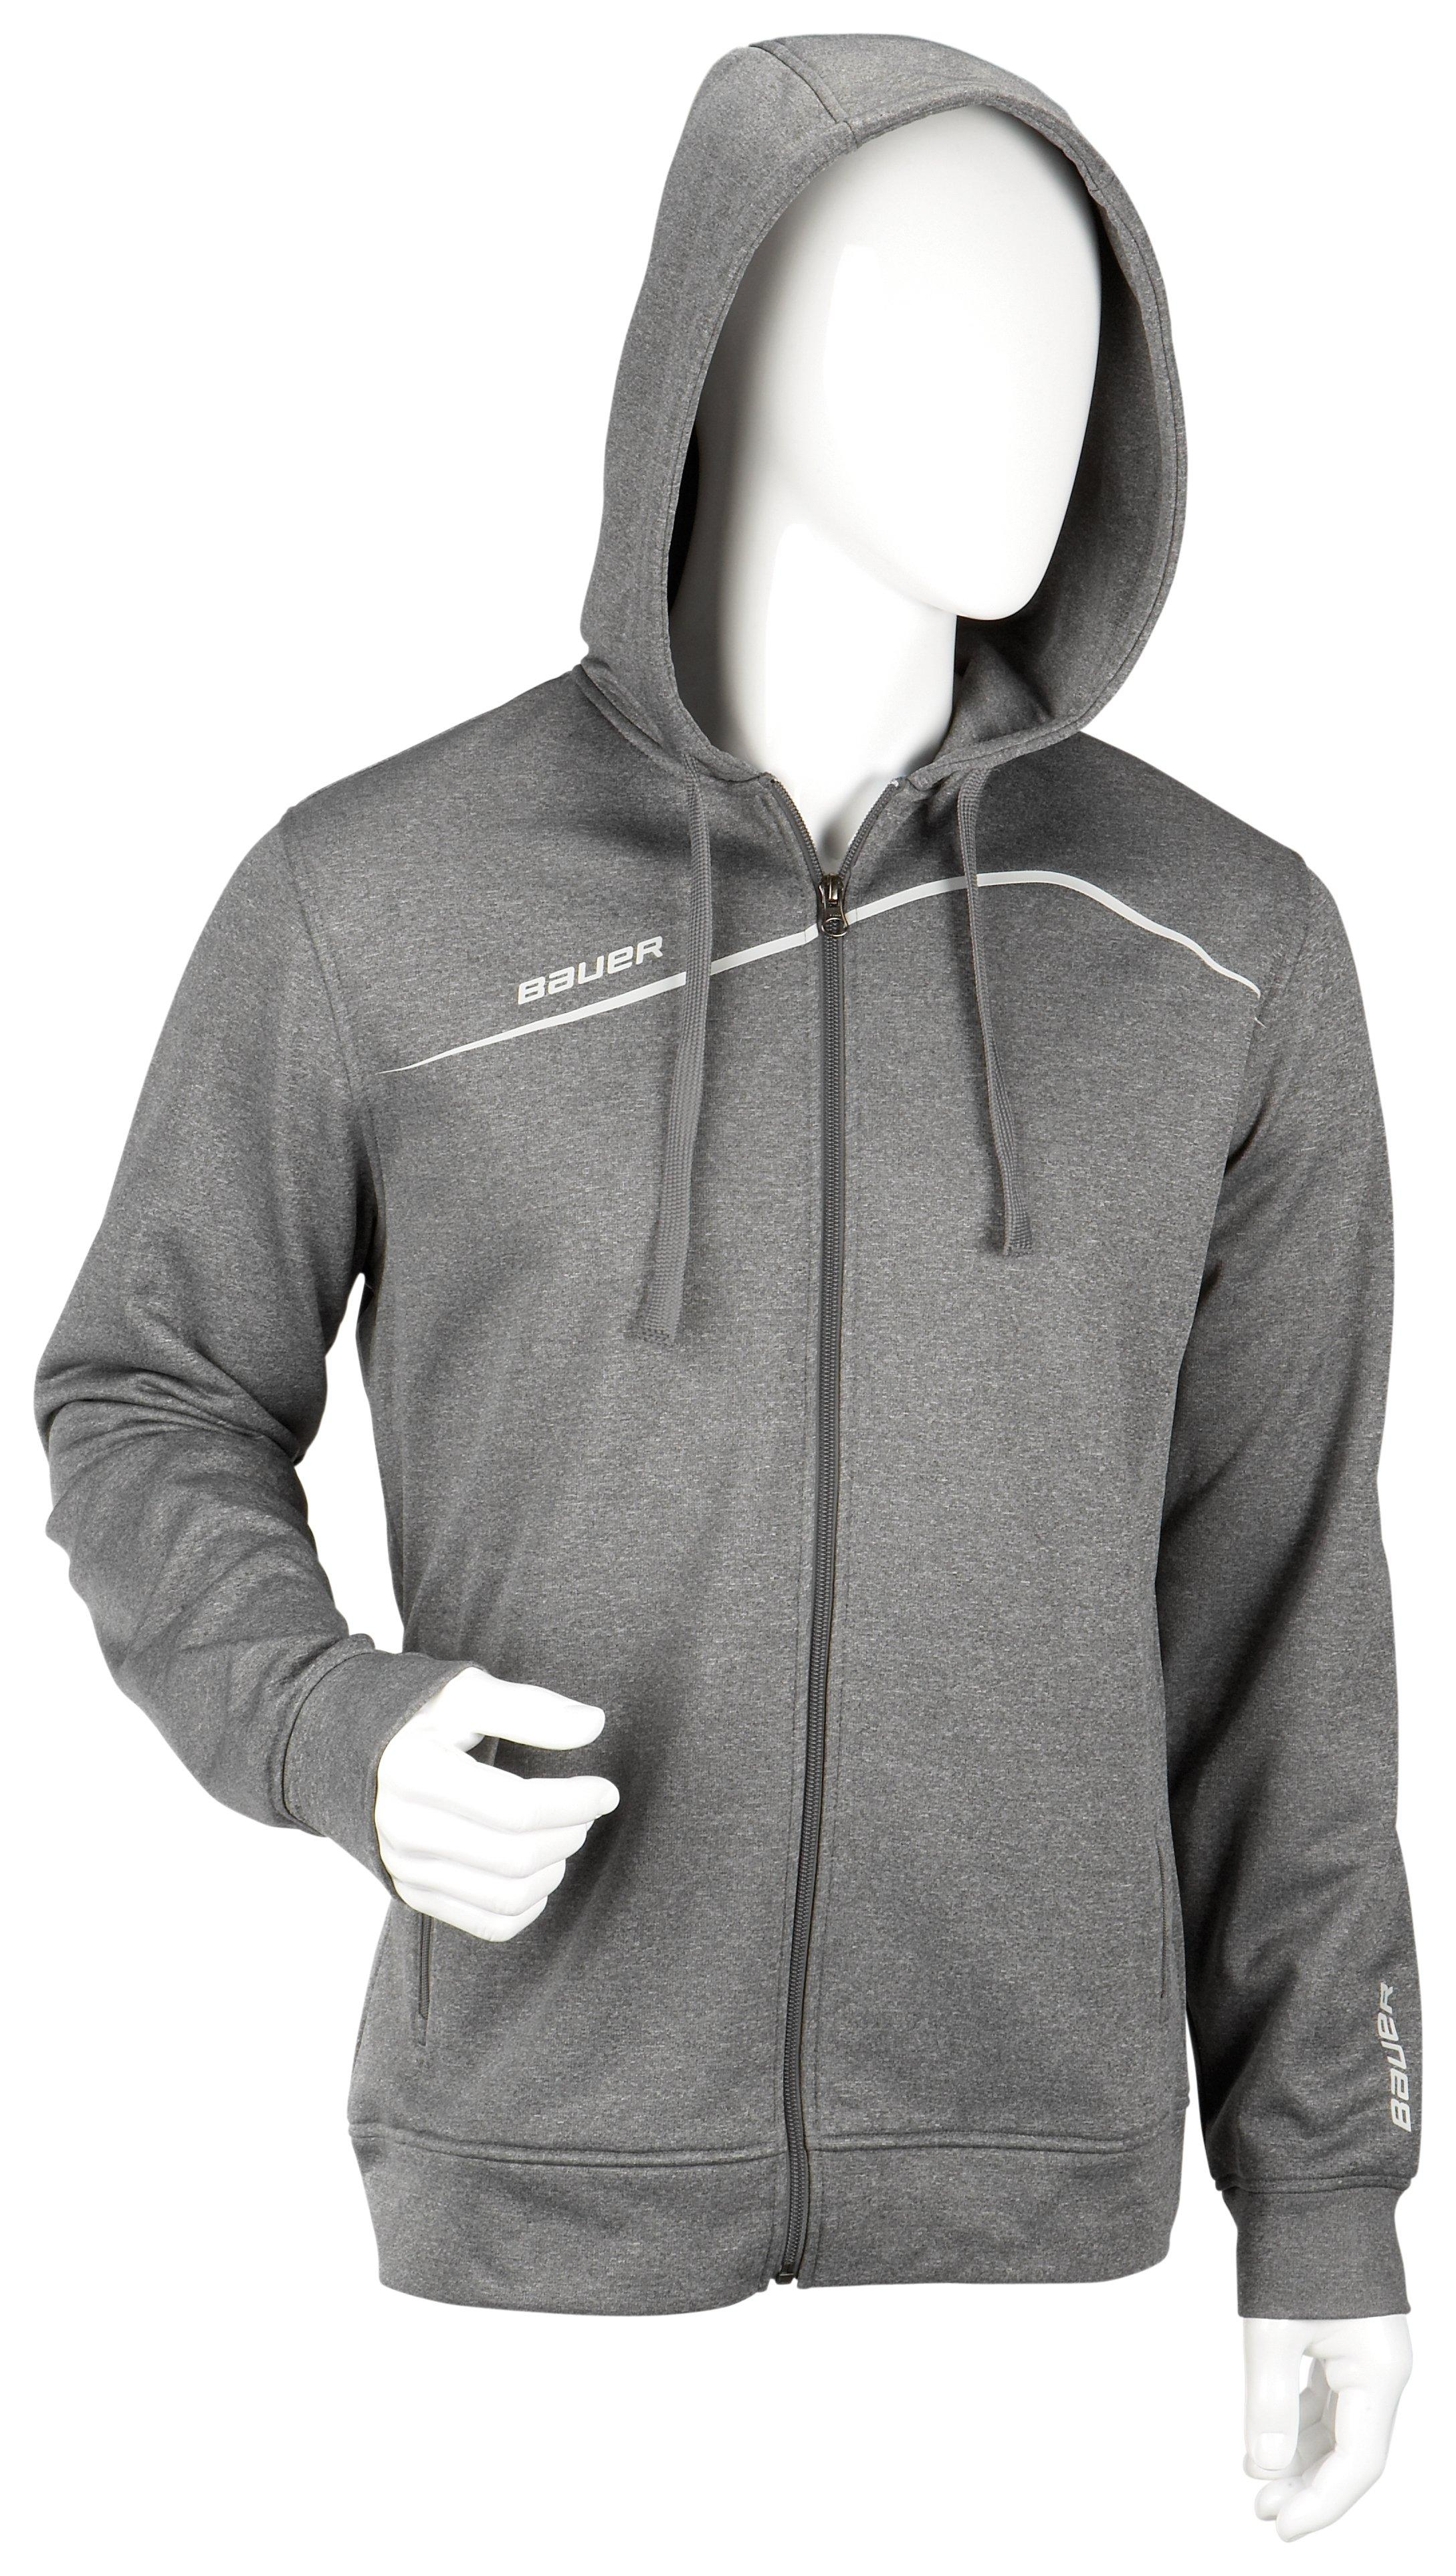 Team Full Zip Hoody - Premium,,Размер M